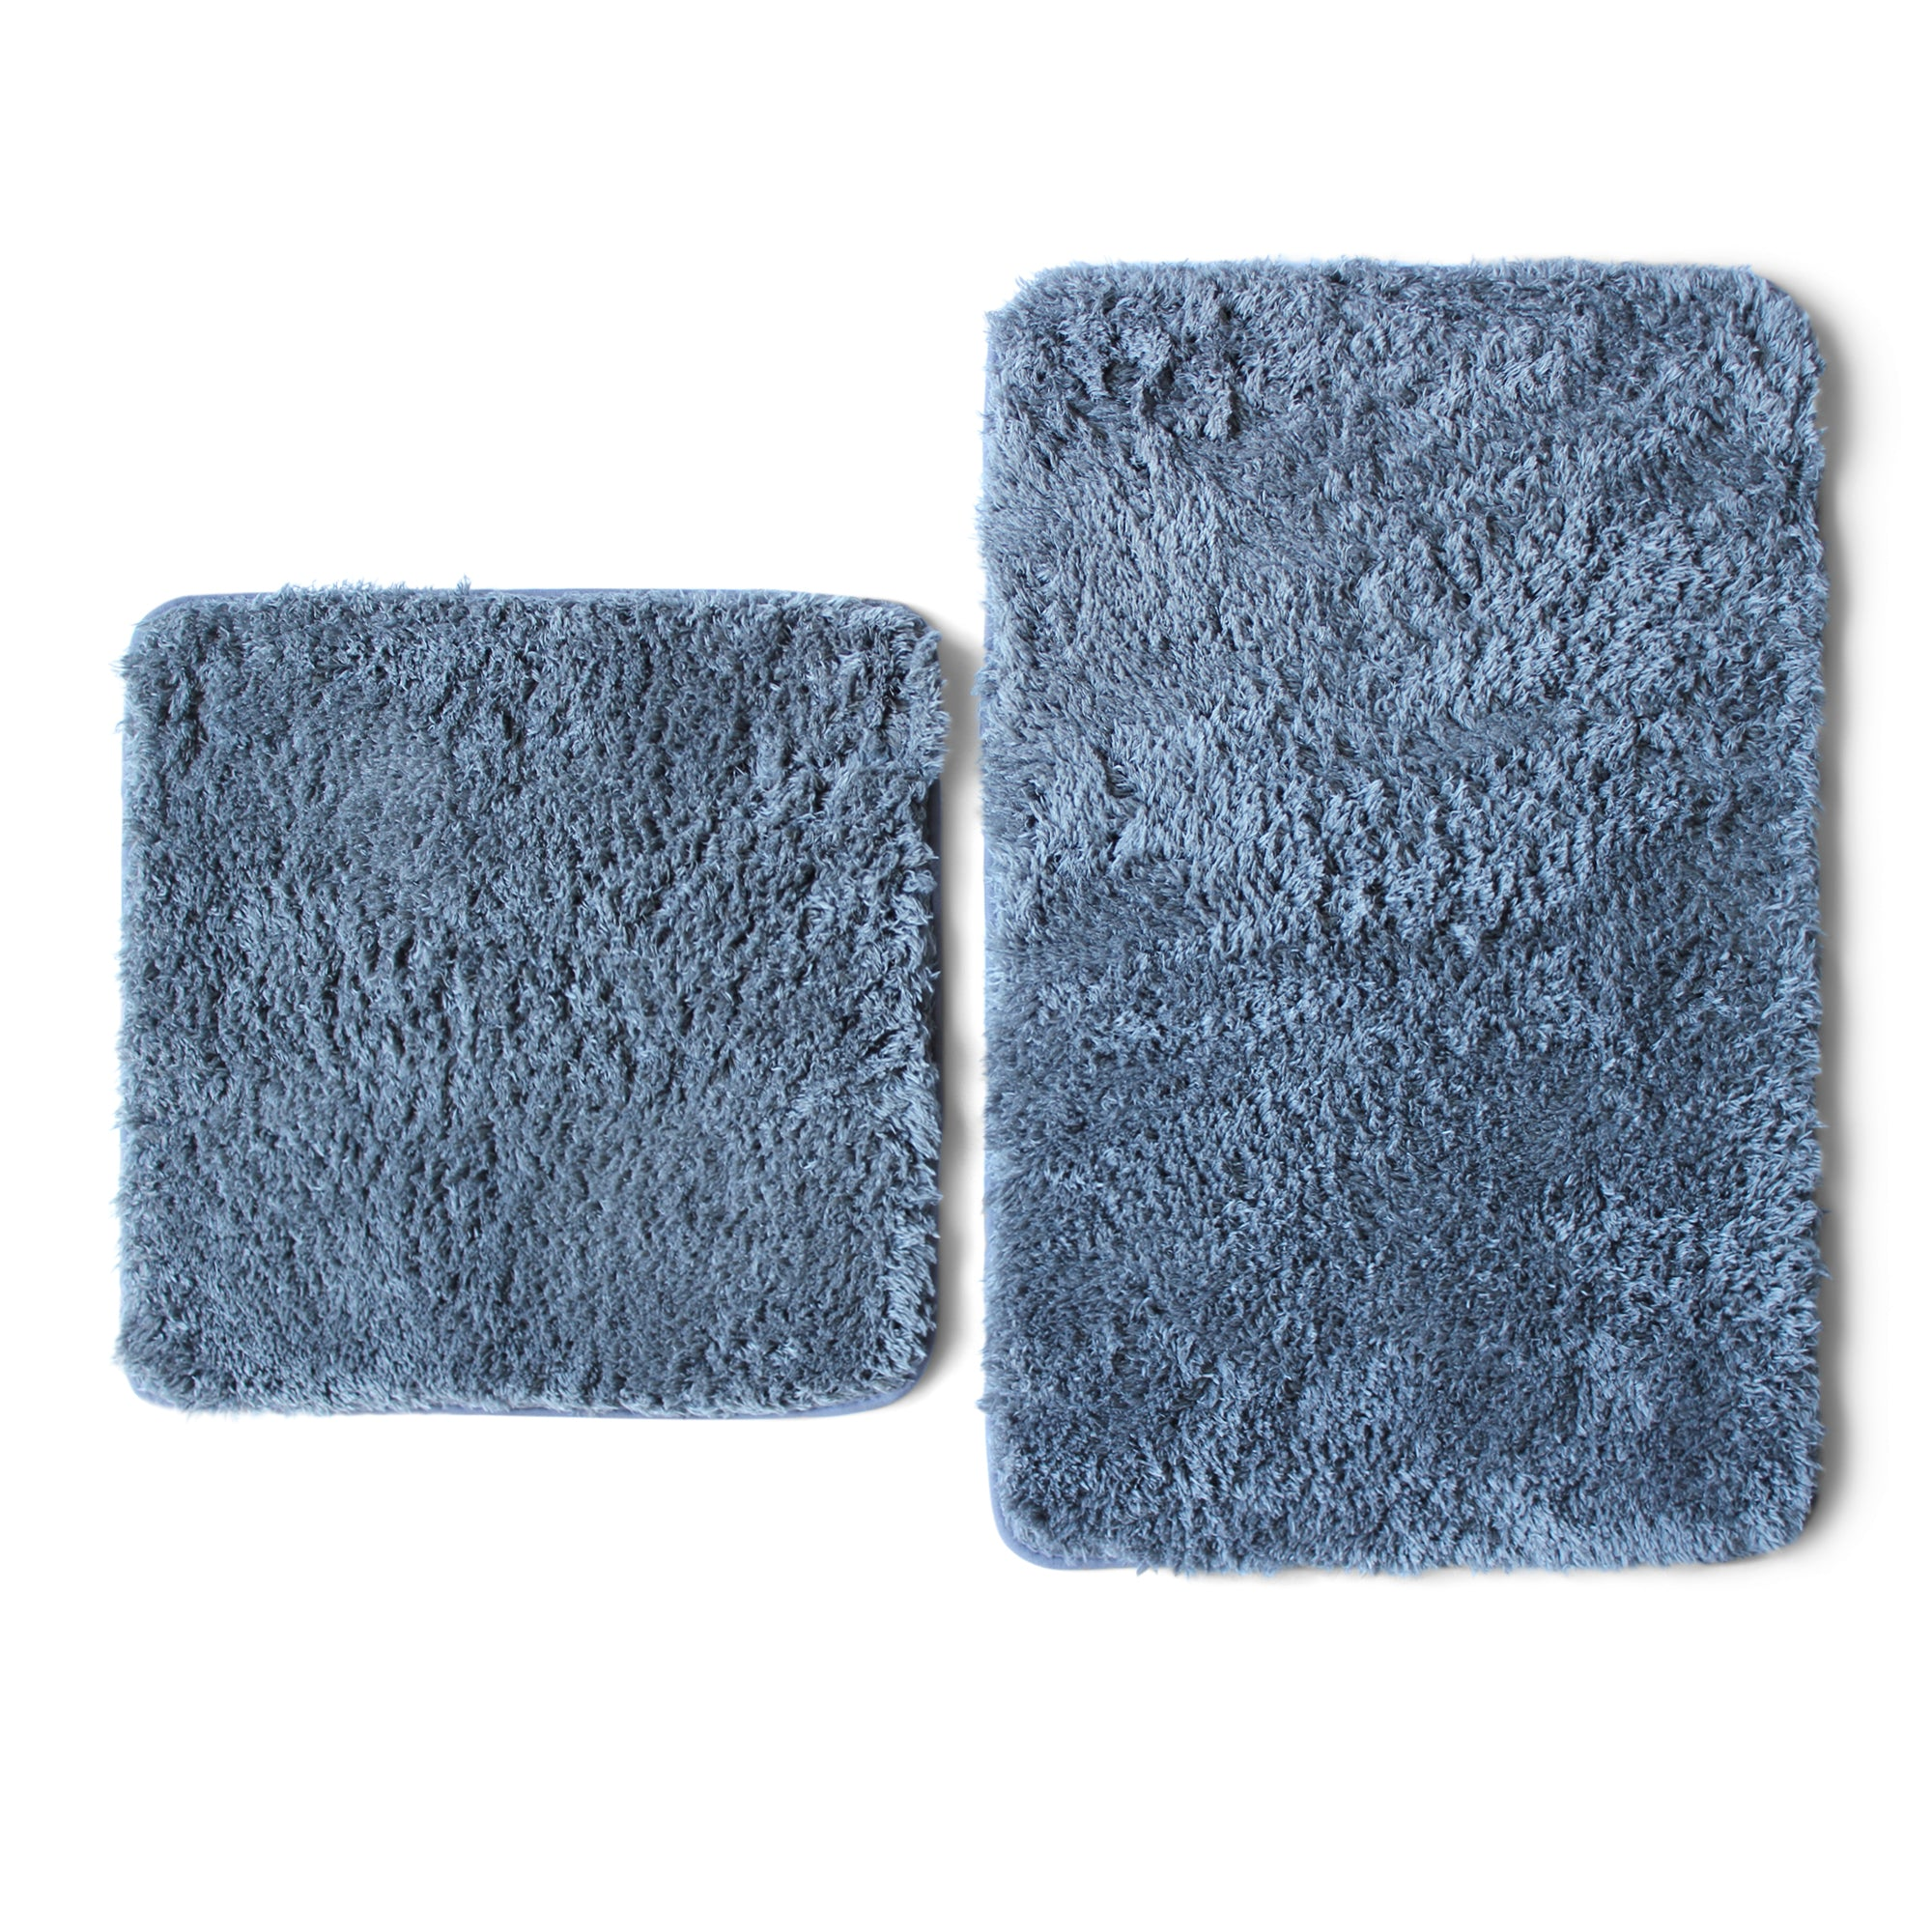 Lush Living - Bath-Boutique Spa Shaggy Bath Mat Set - 2 Piece - Grey